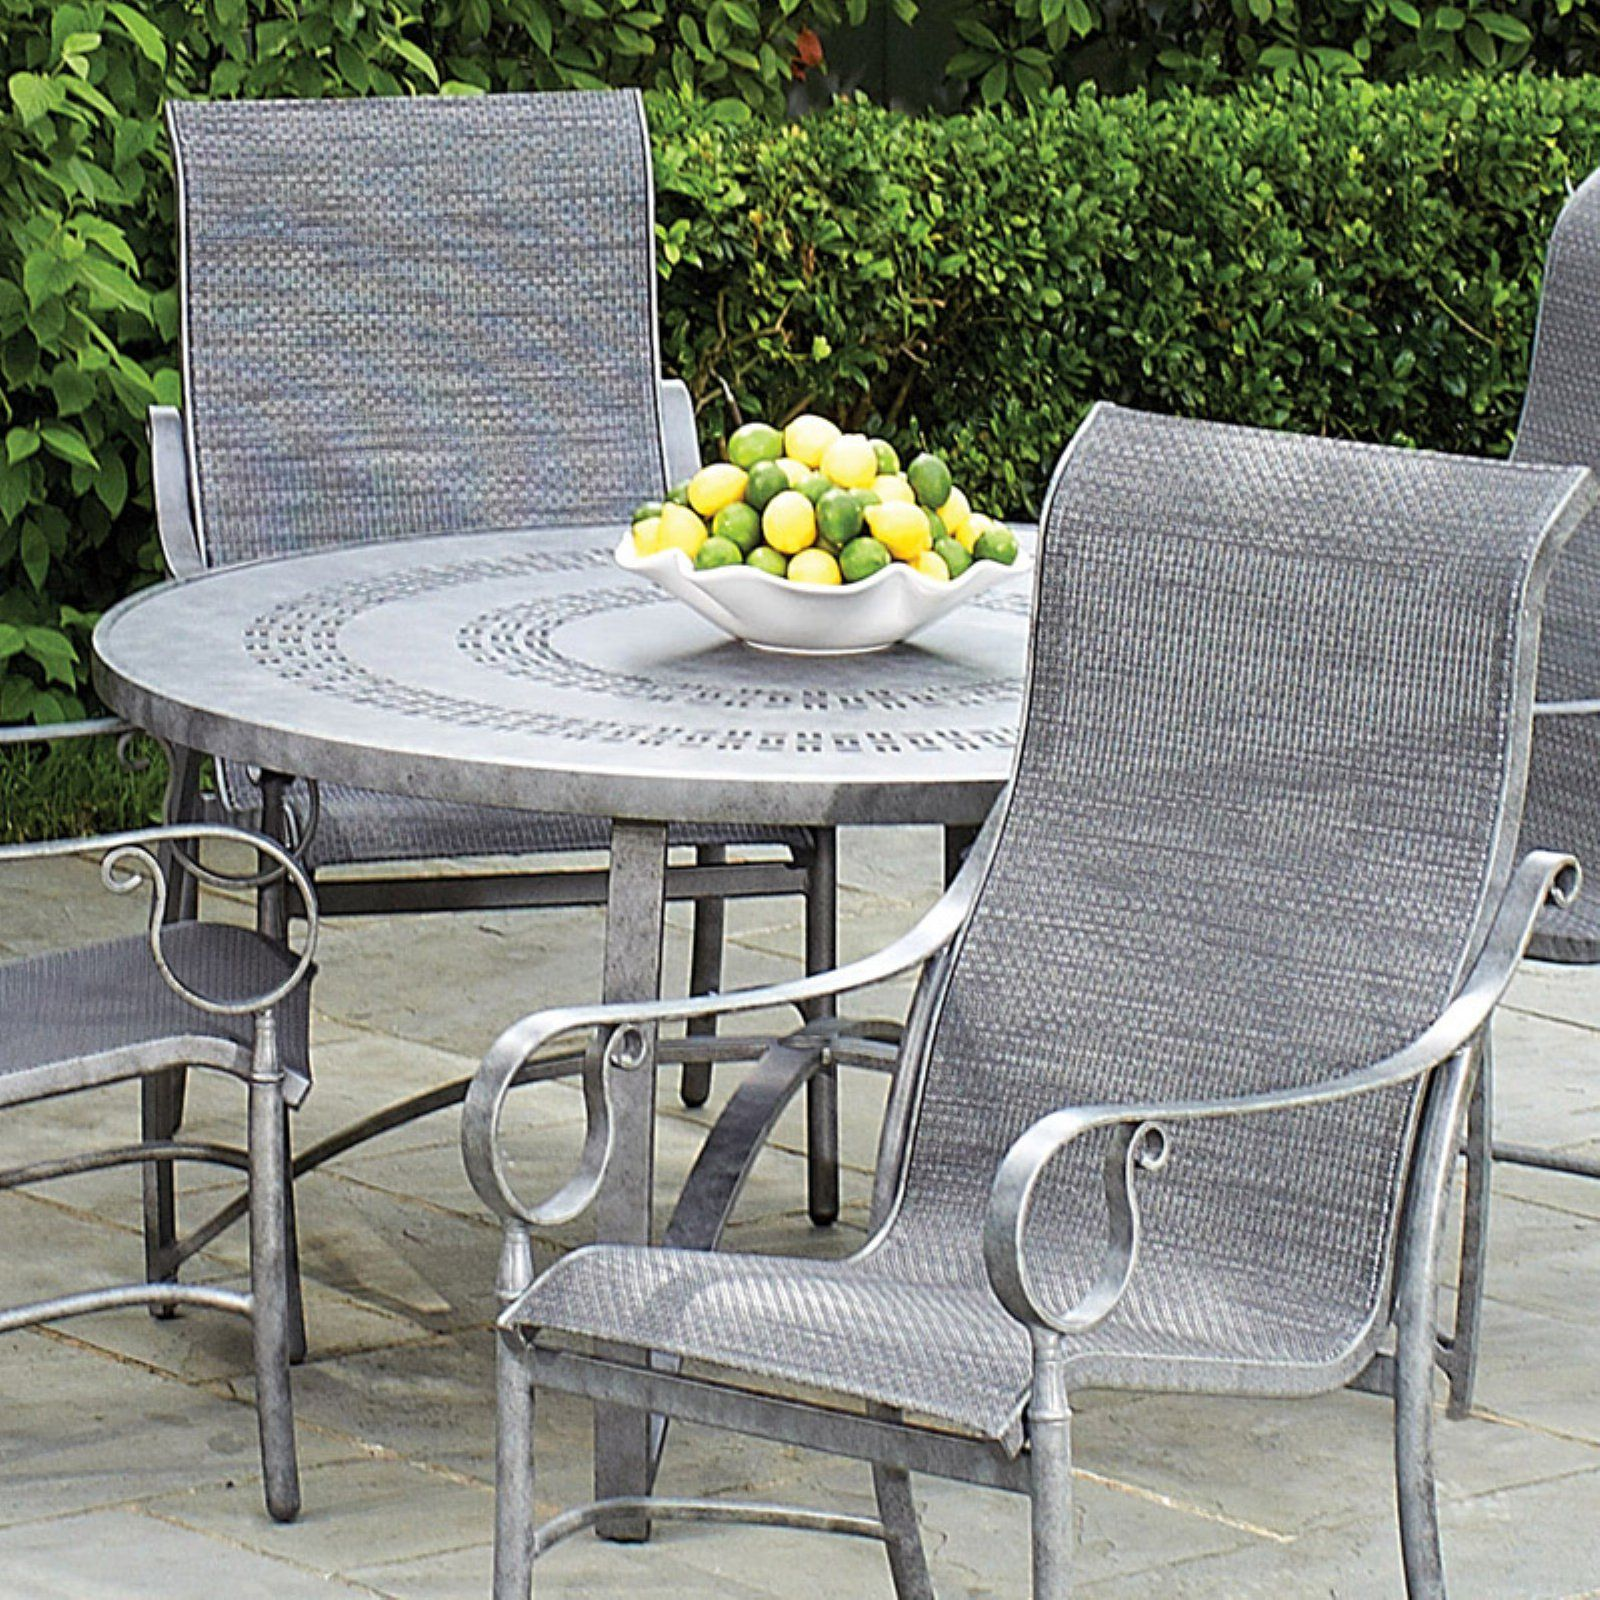 Woodard Aluminum Deluxe 30 In Round Dining Table Trellis In 2020 Patio Dining Table Patio Dining Round Dining Table